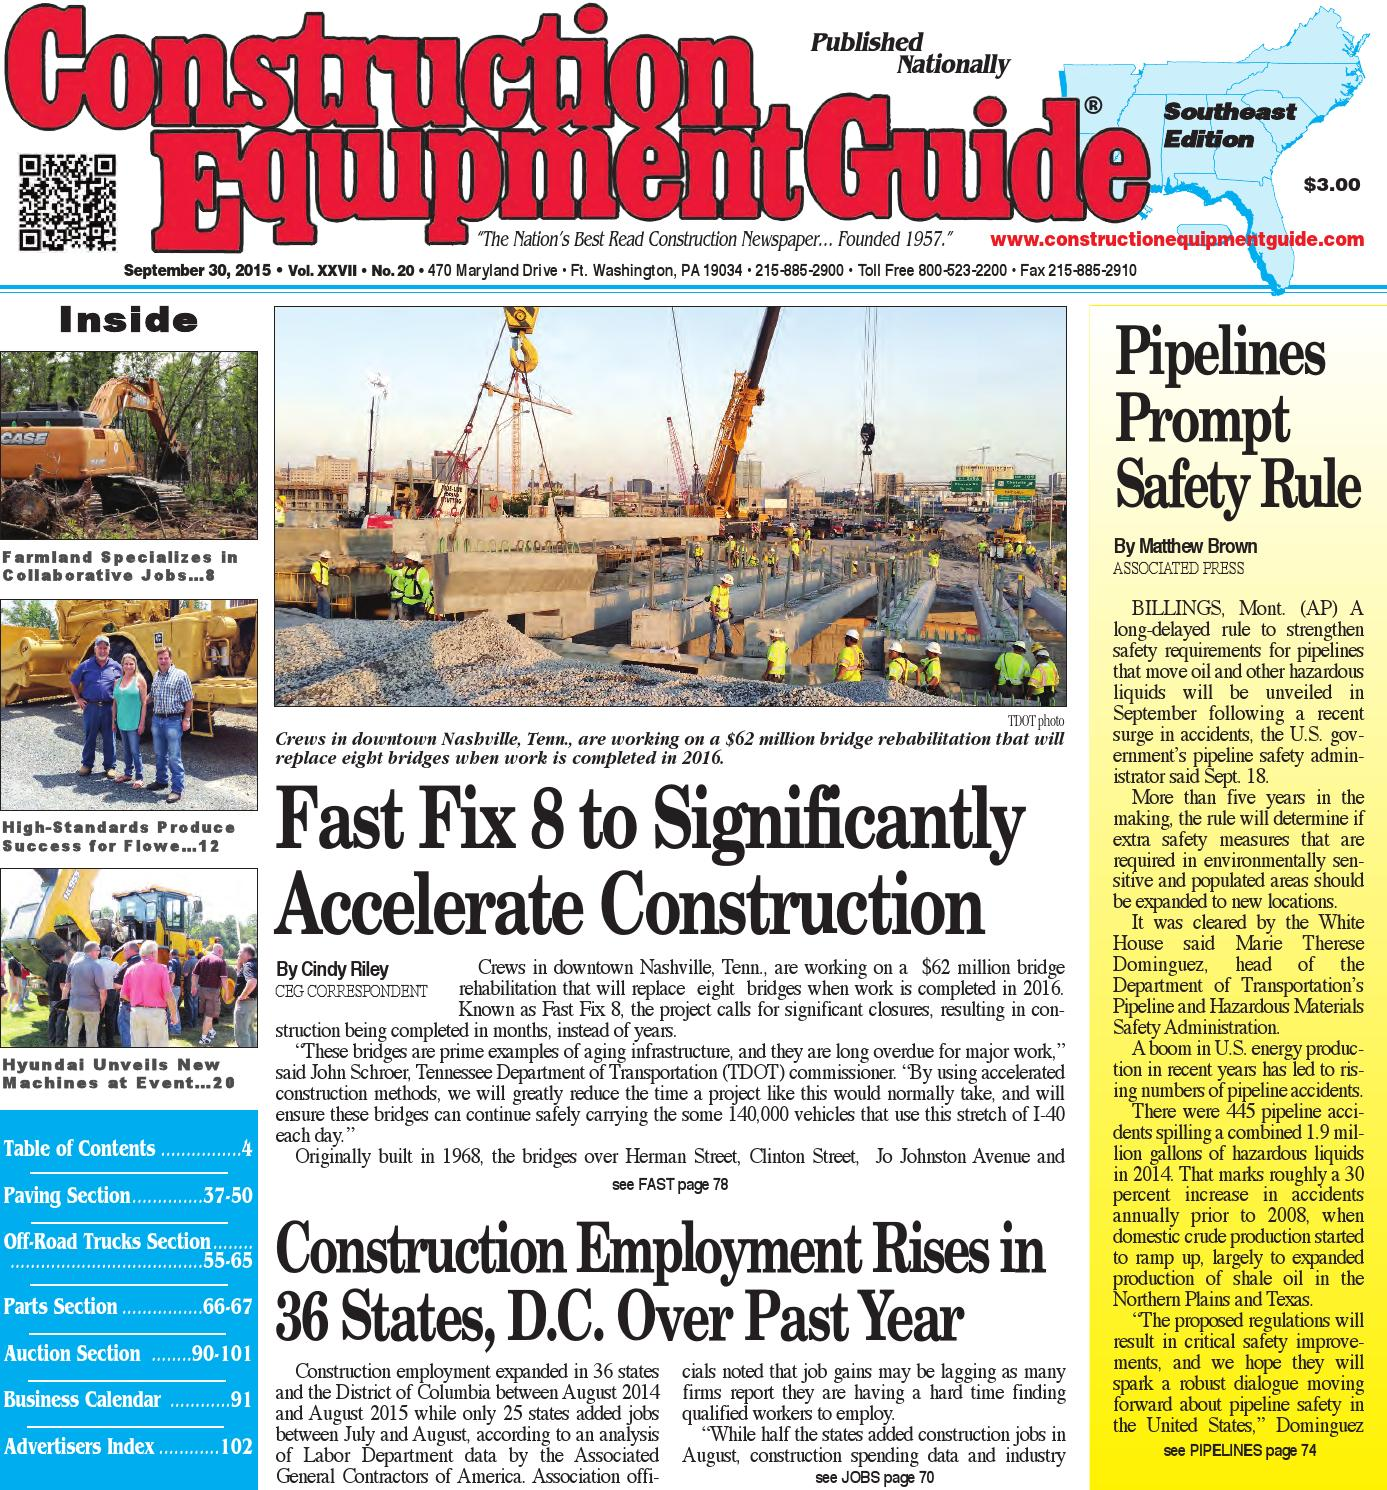 Southeast 20 2015 by Construction Equipment Guide - issuu